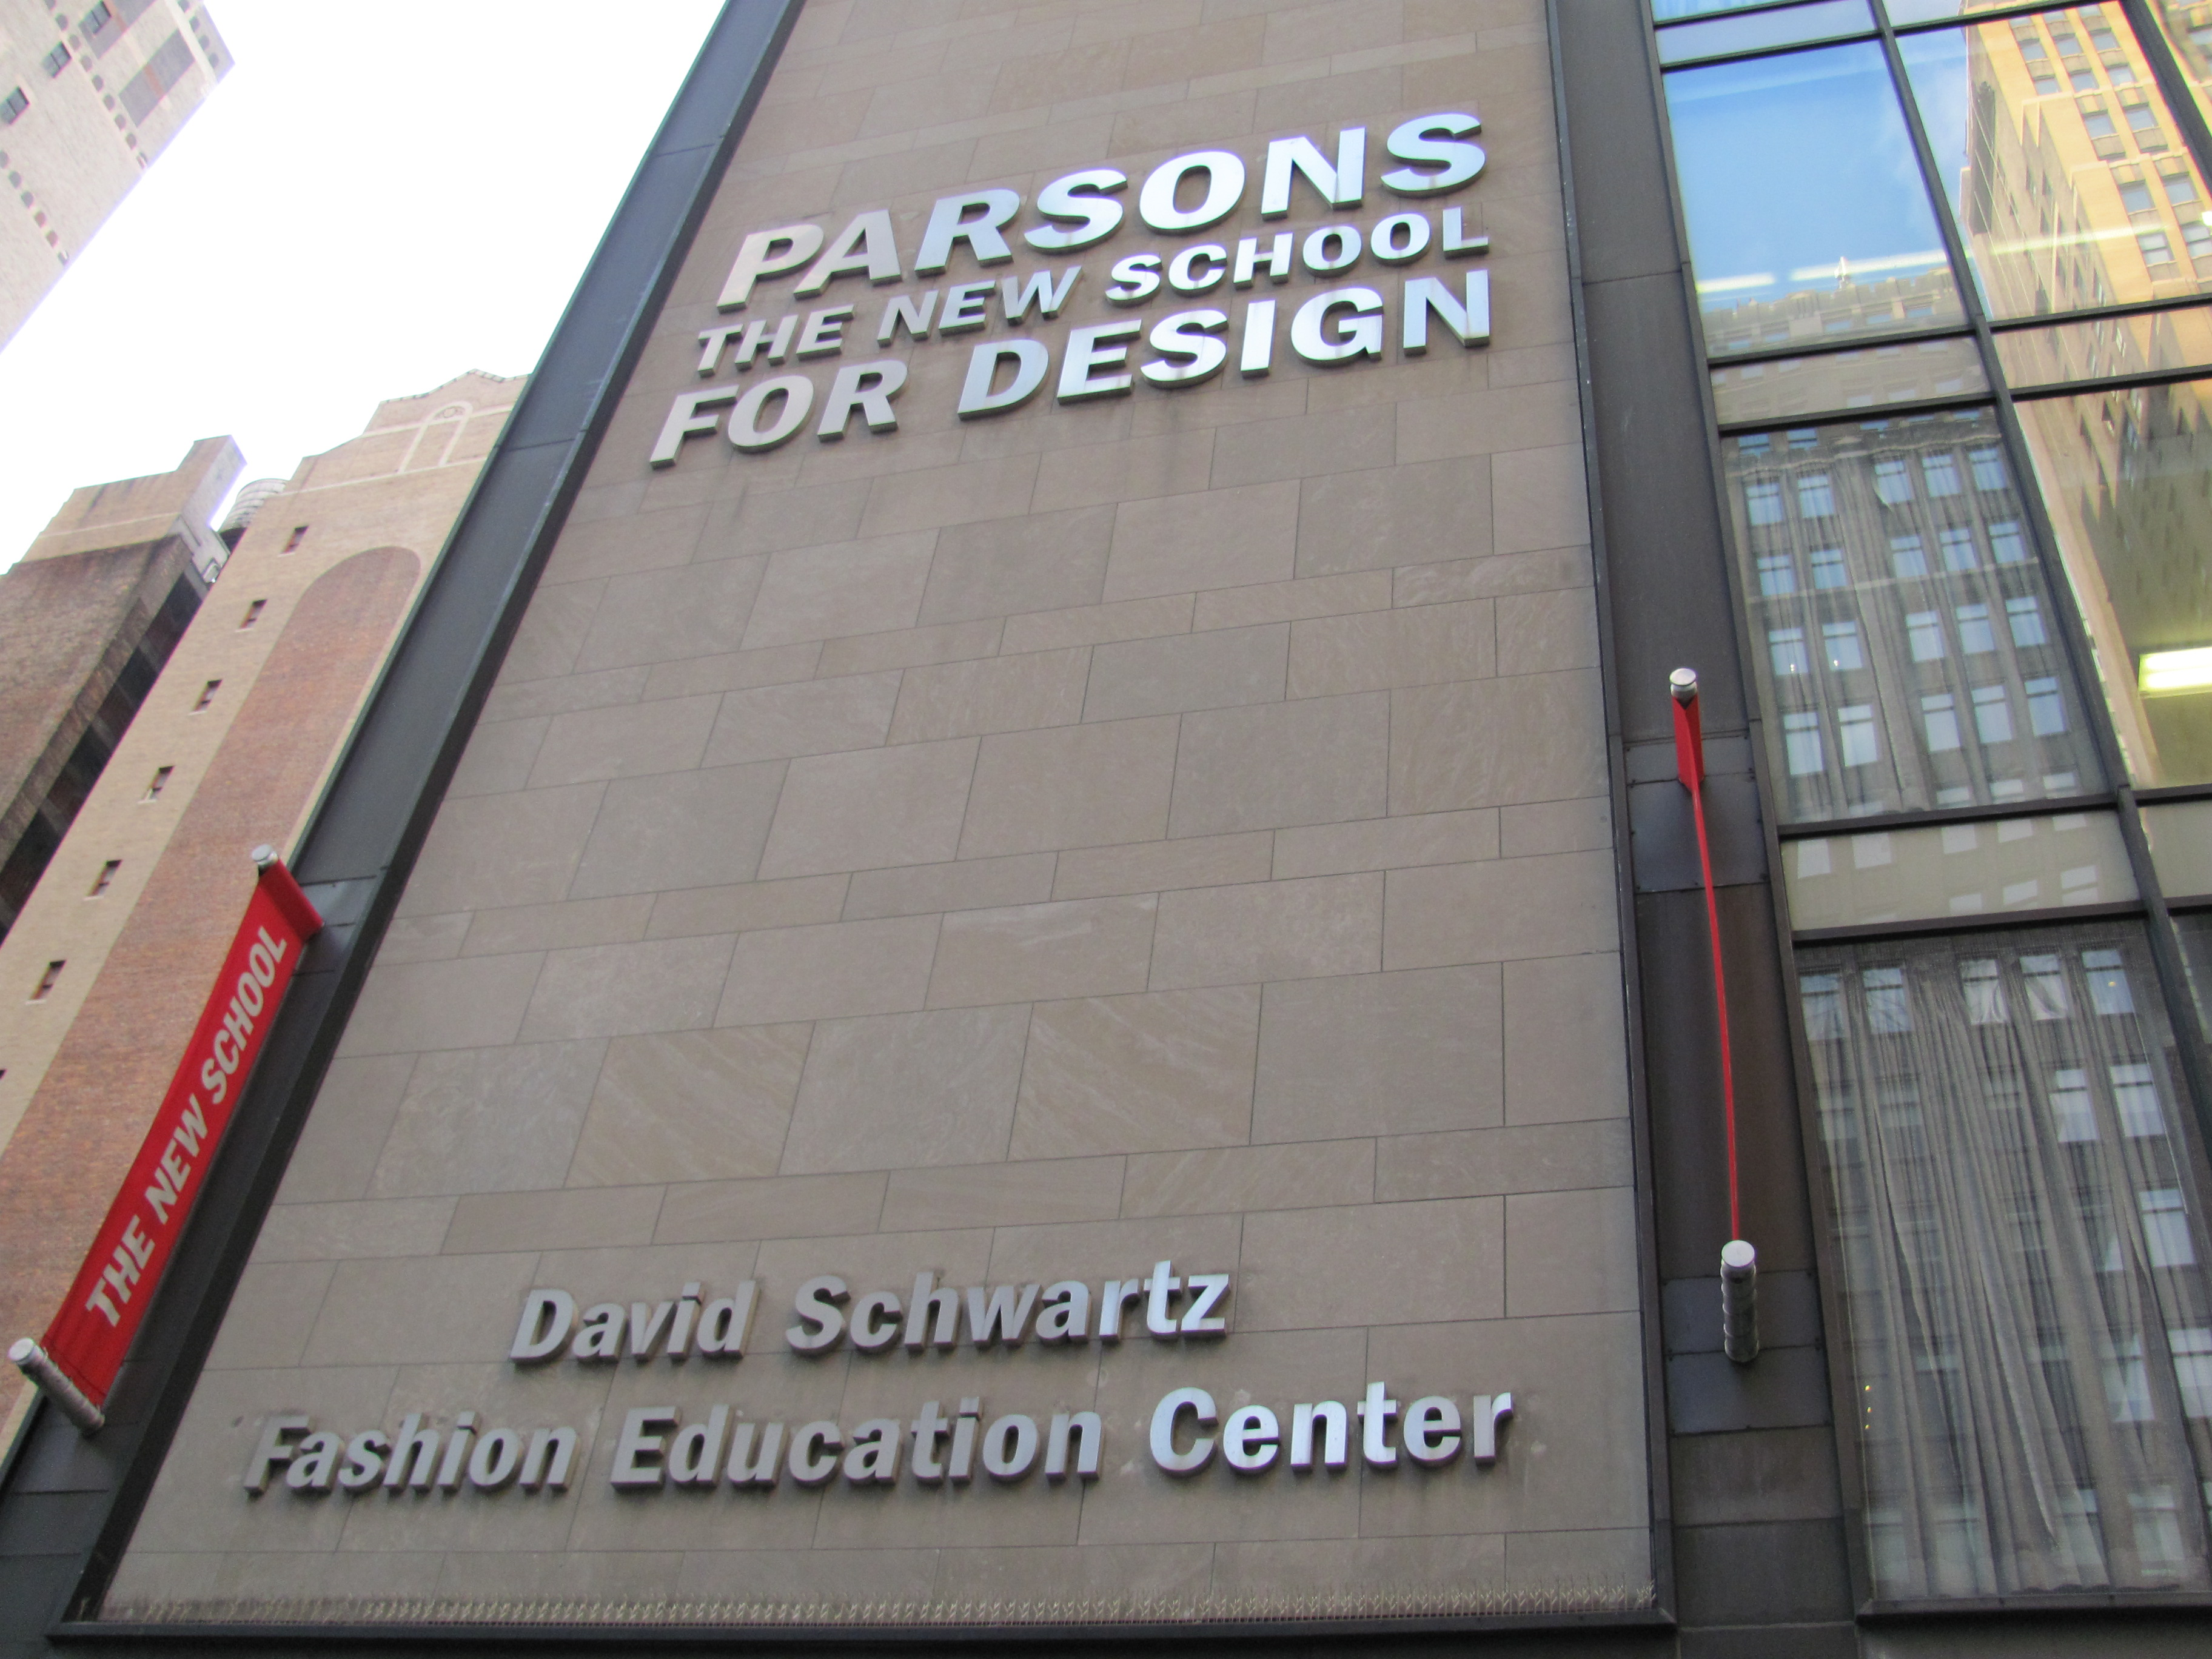 Depiction of Parsons The New School for Design